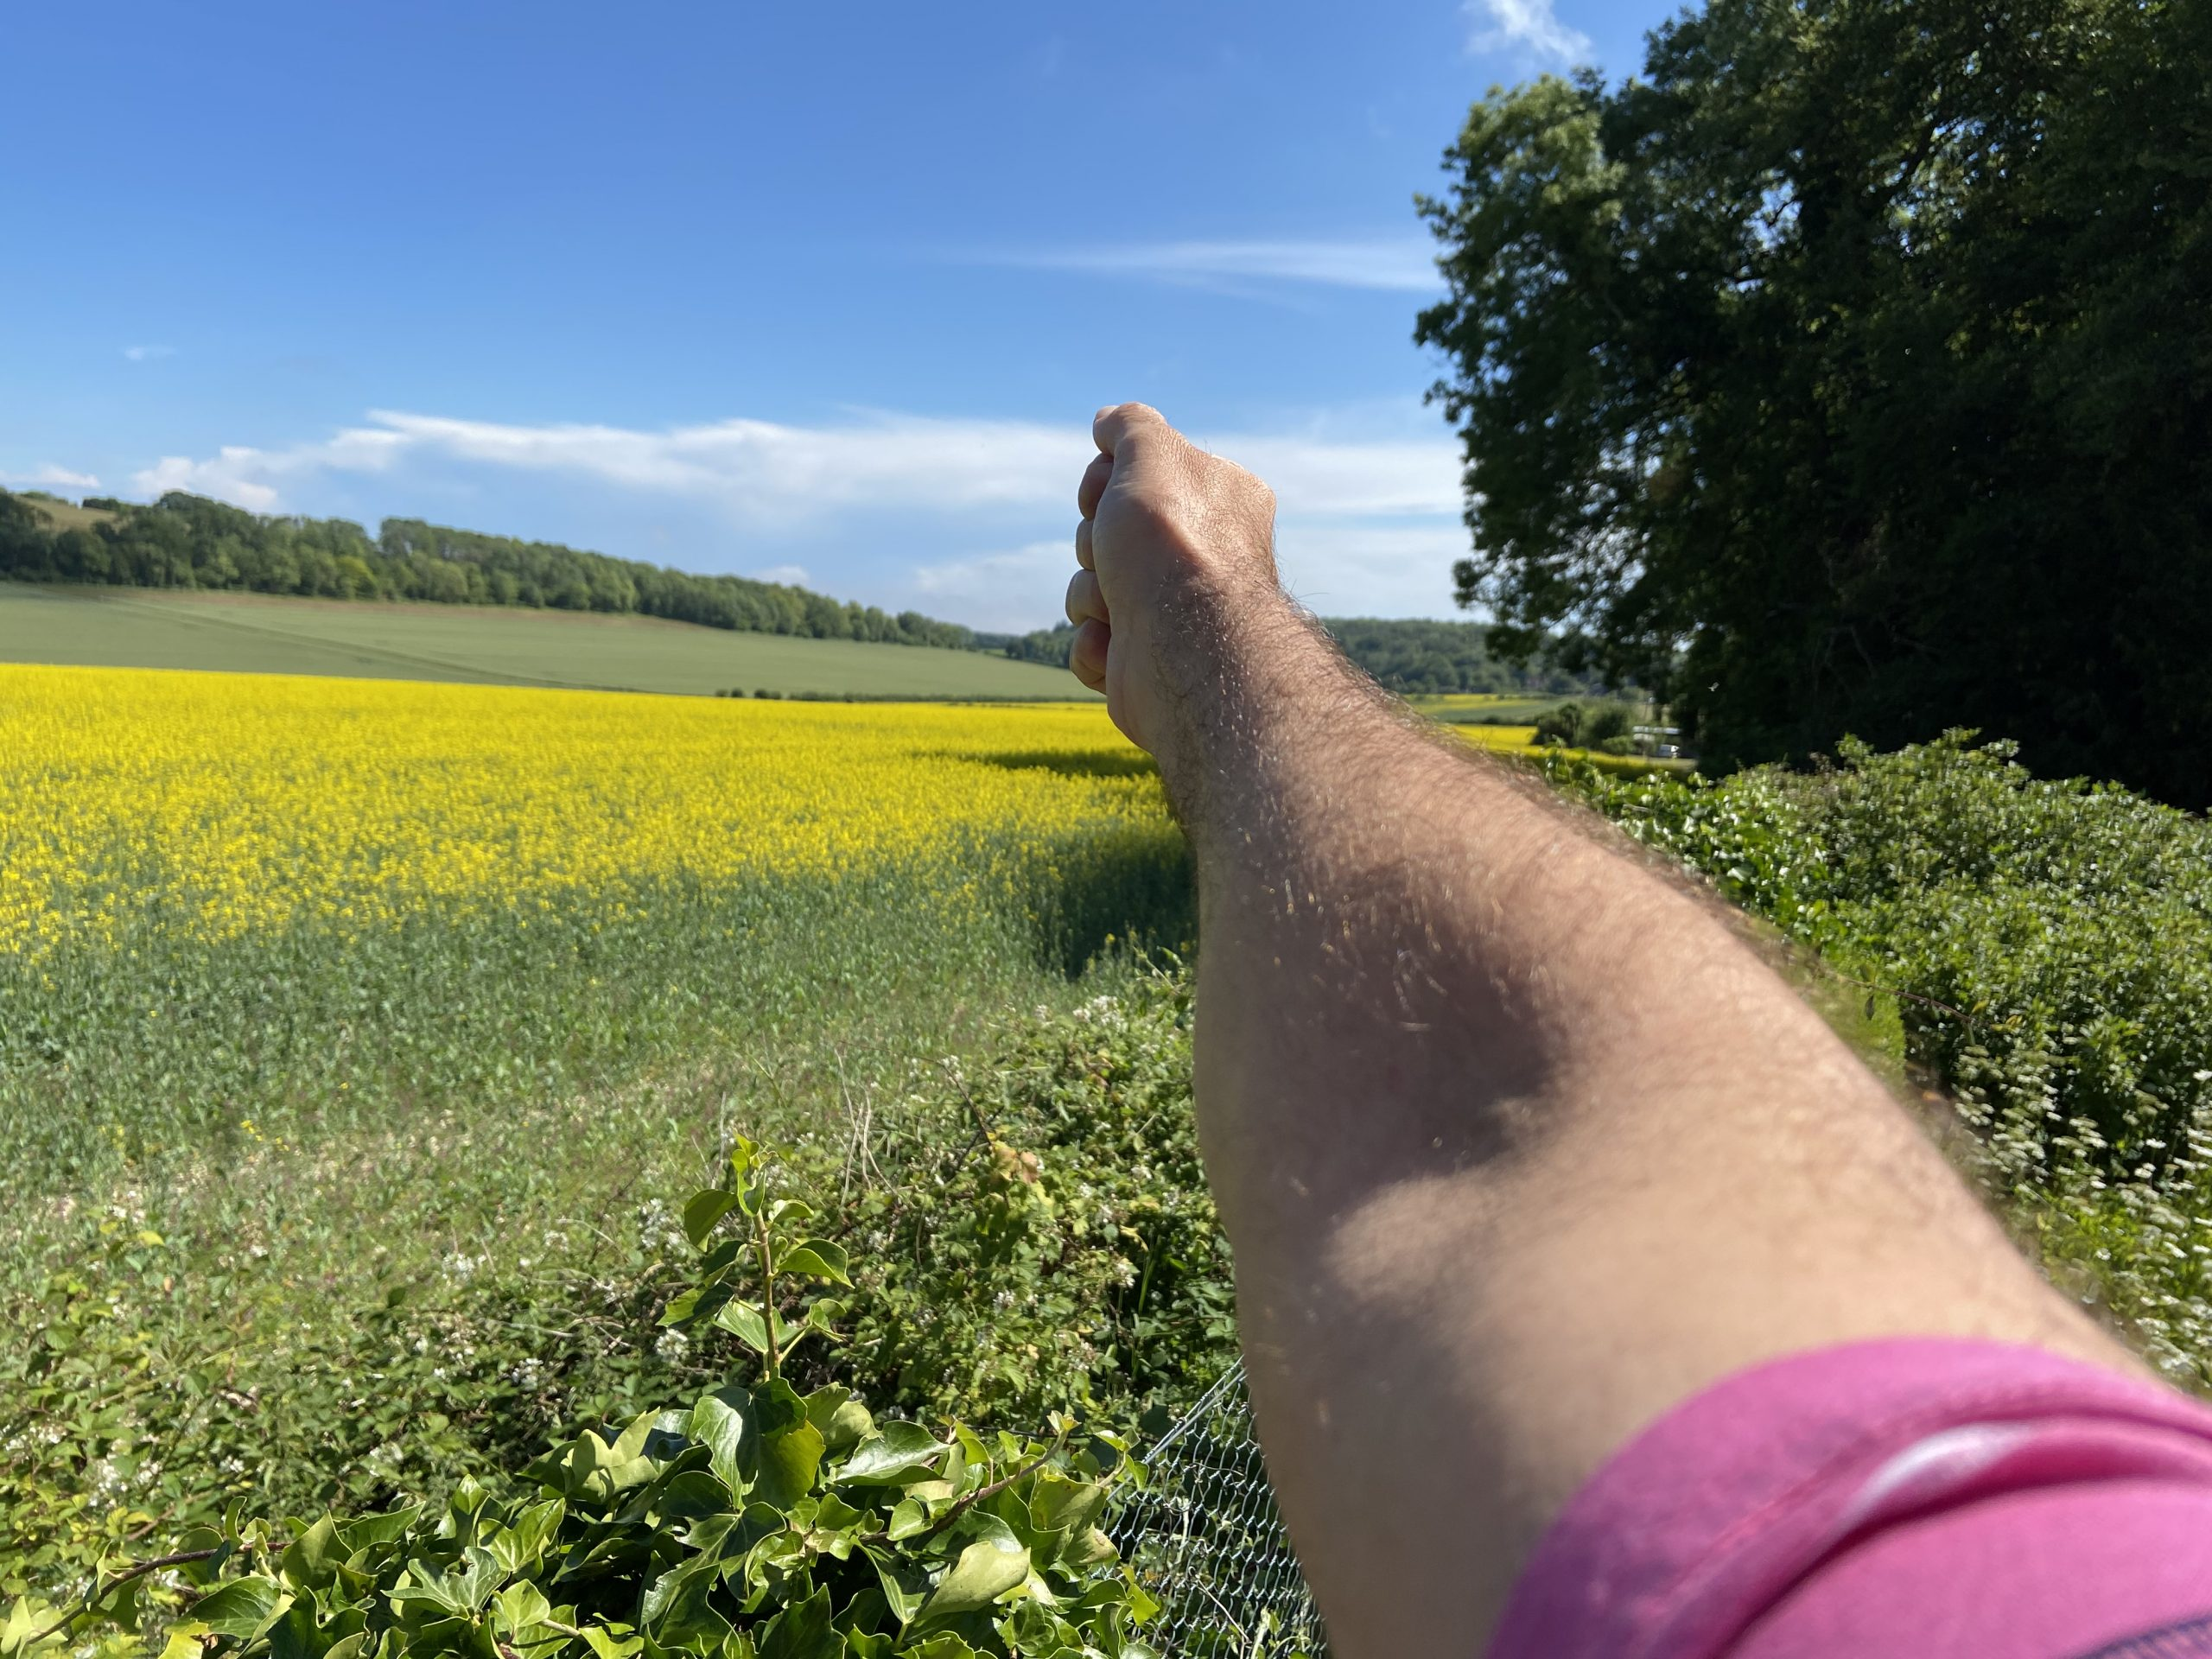 A man's hand and arm pointing across a rapeseed field (on a sunny day) s if wayfind